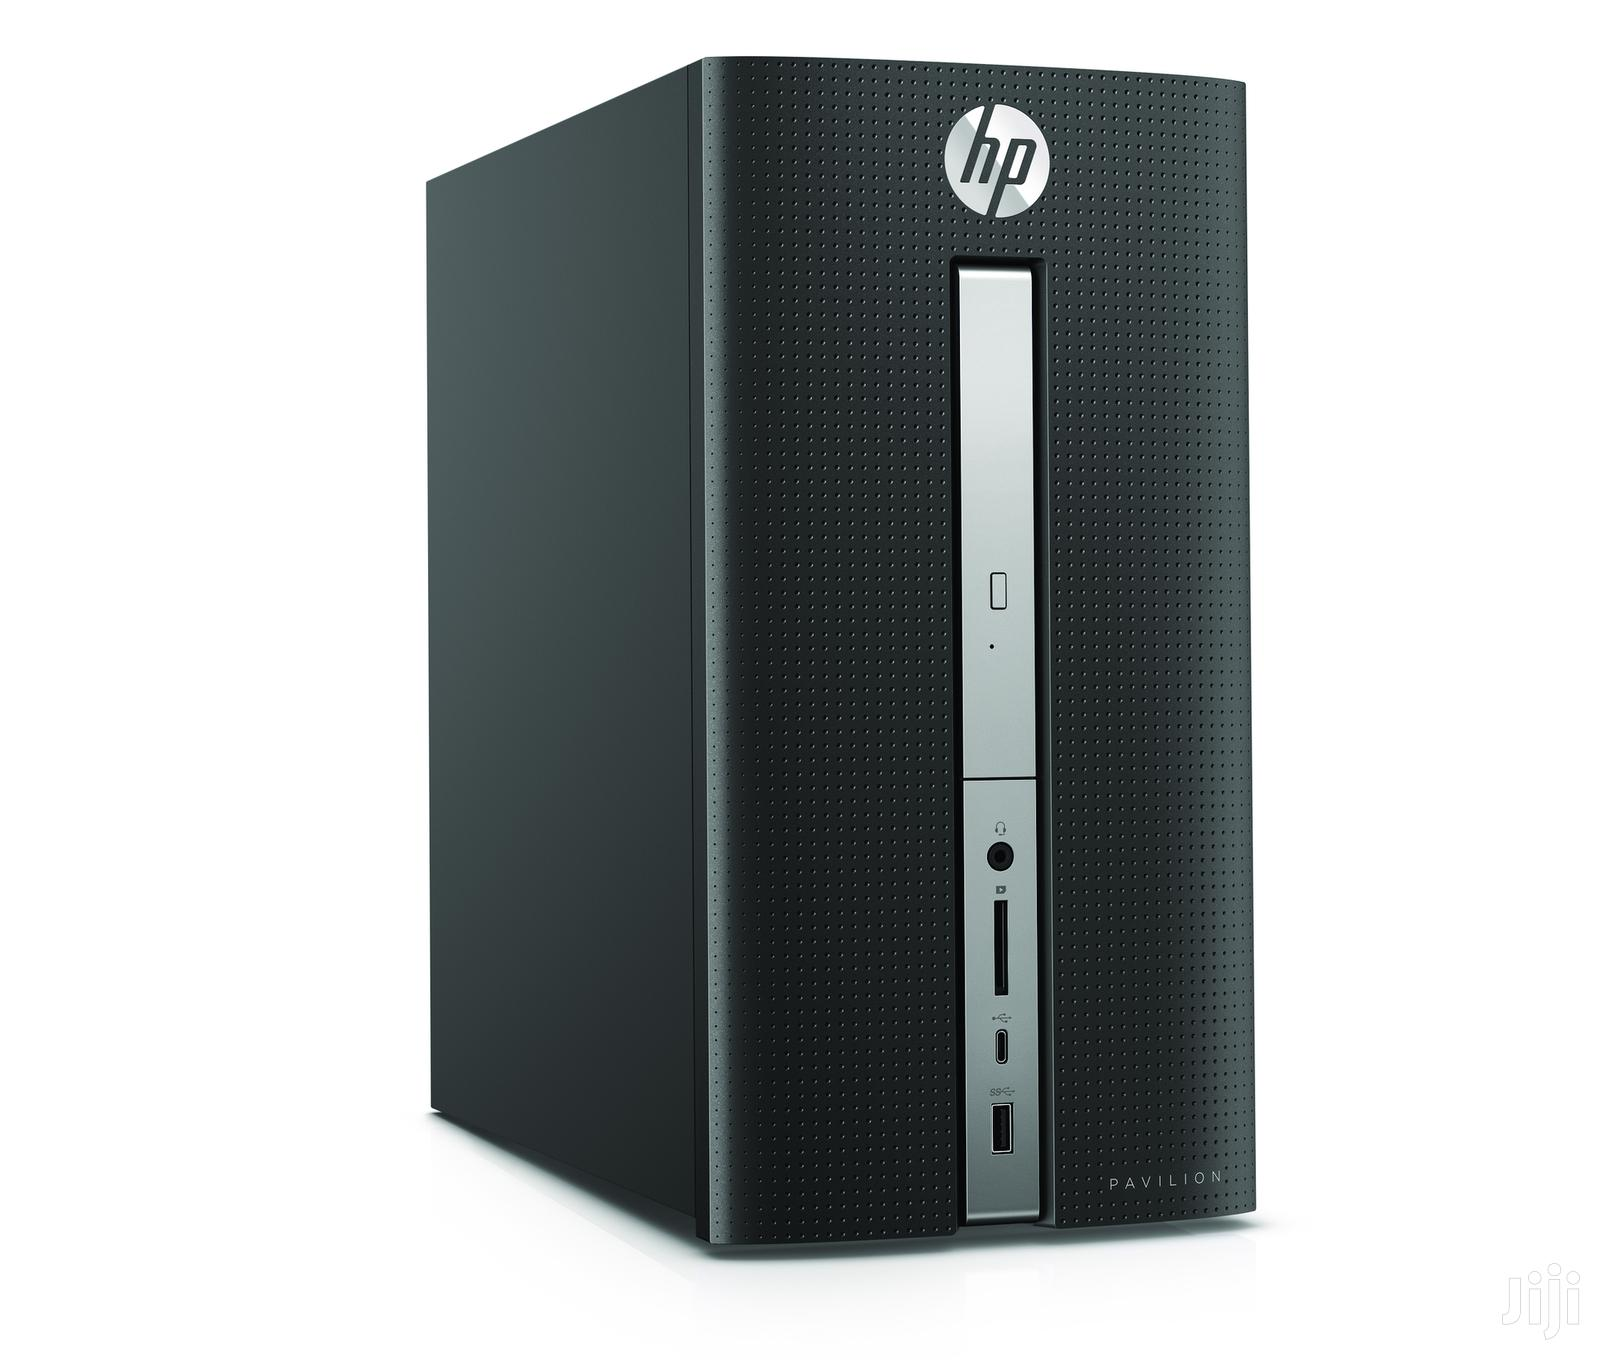 New Desktop Computer HP Pavilion 570 8GB Intel Core I5 HDD 1T | Laptops & Computers for sale in Accra new Town, Greater Accra, Ghana